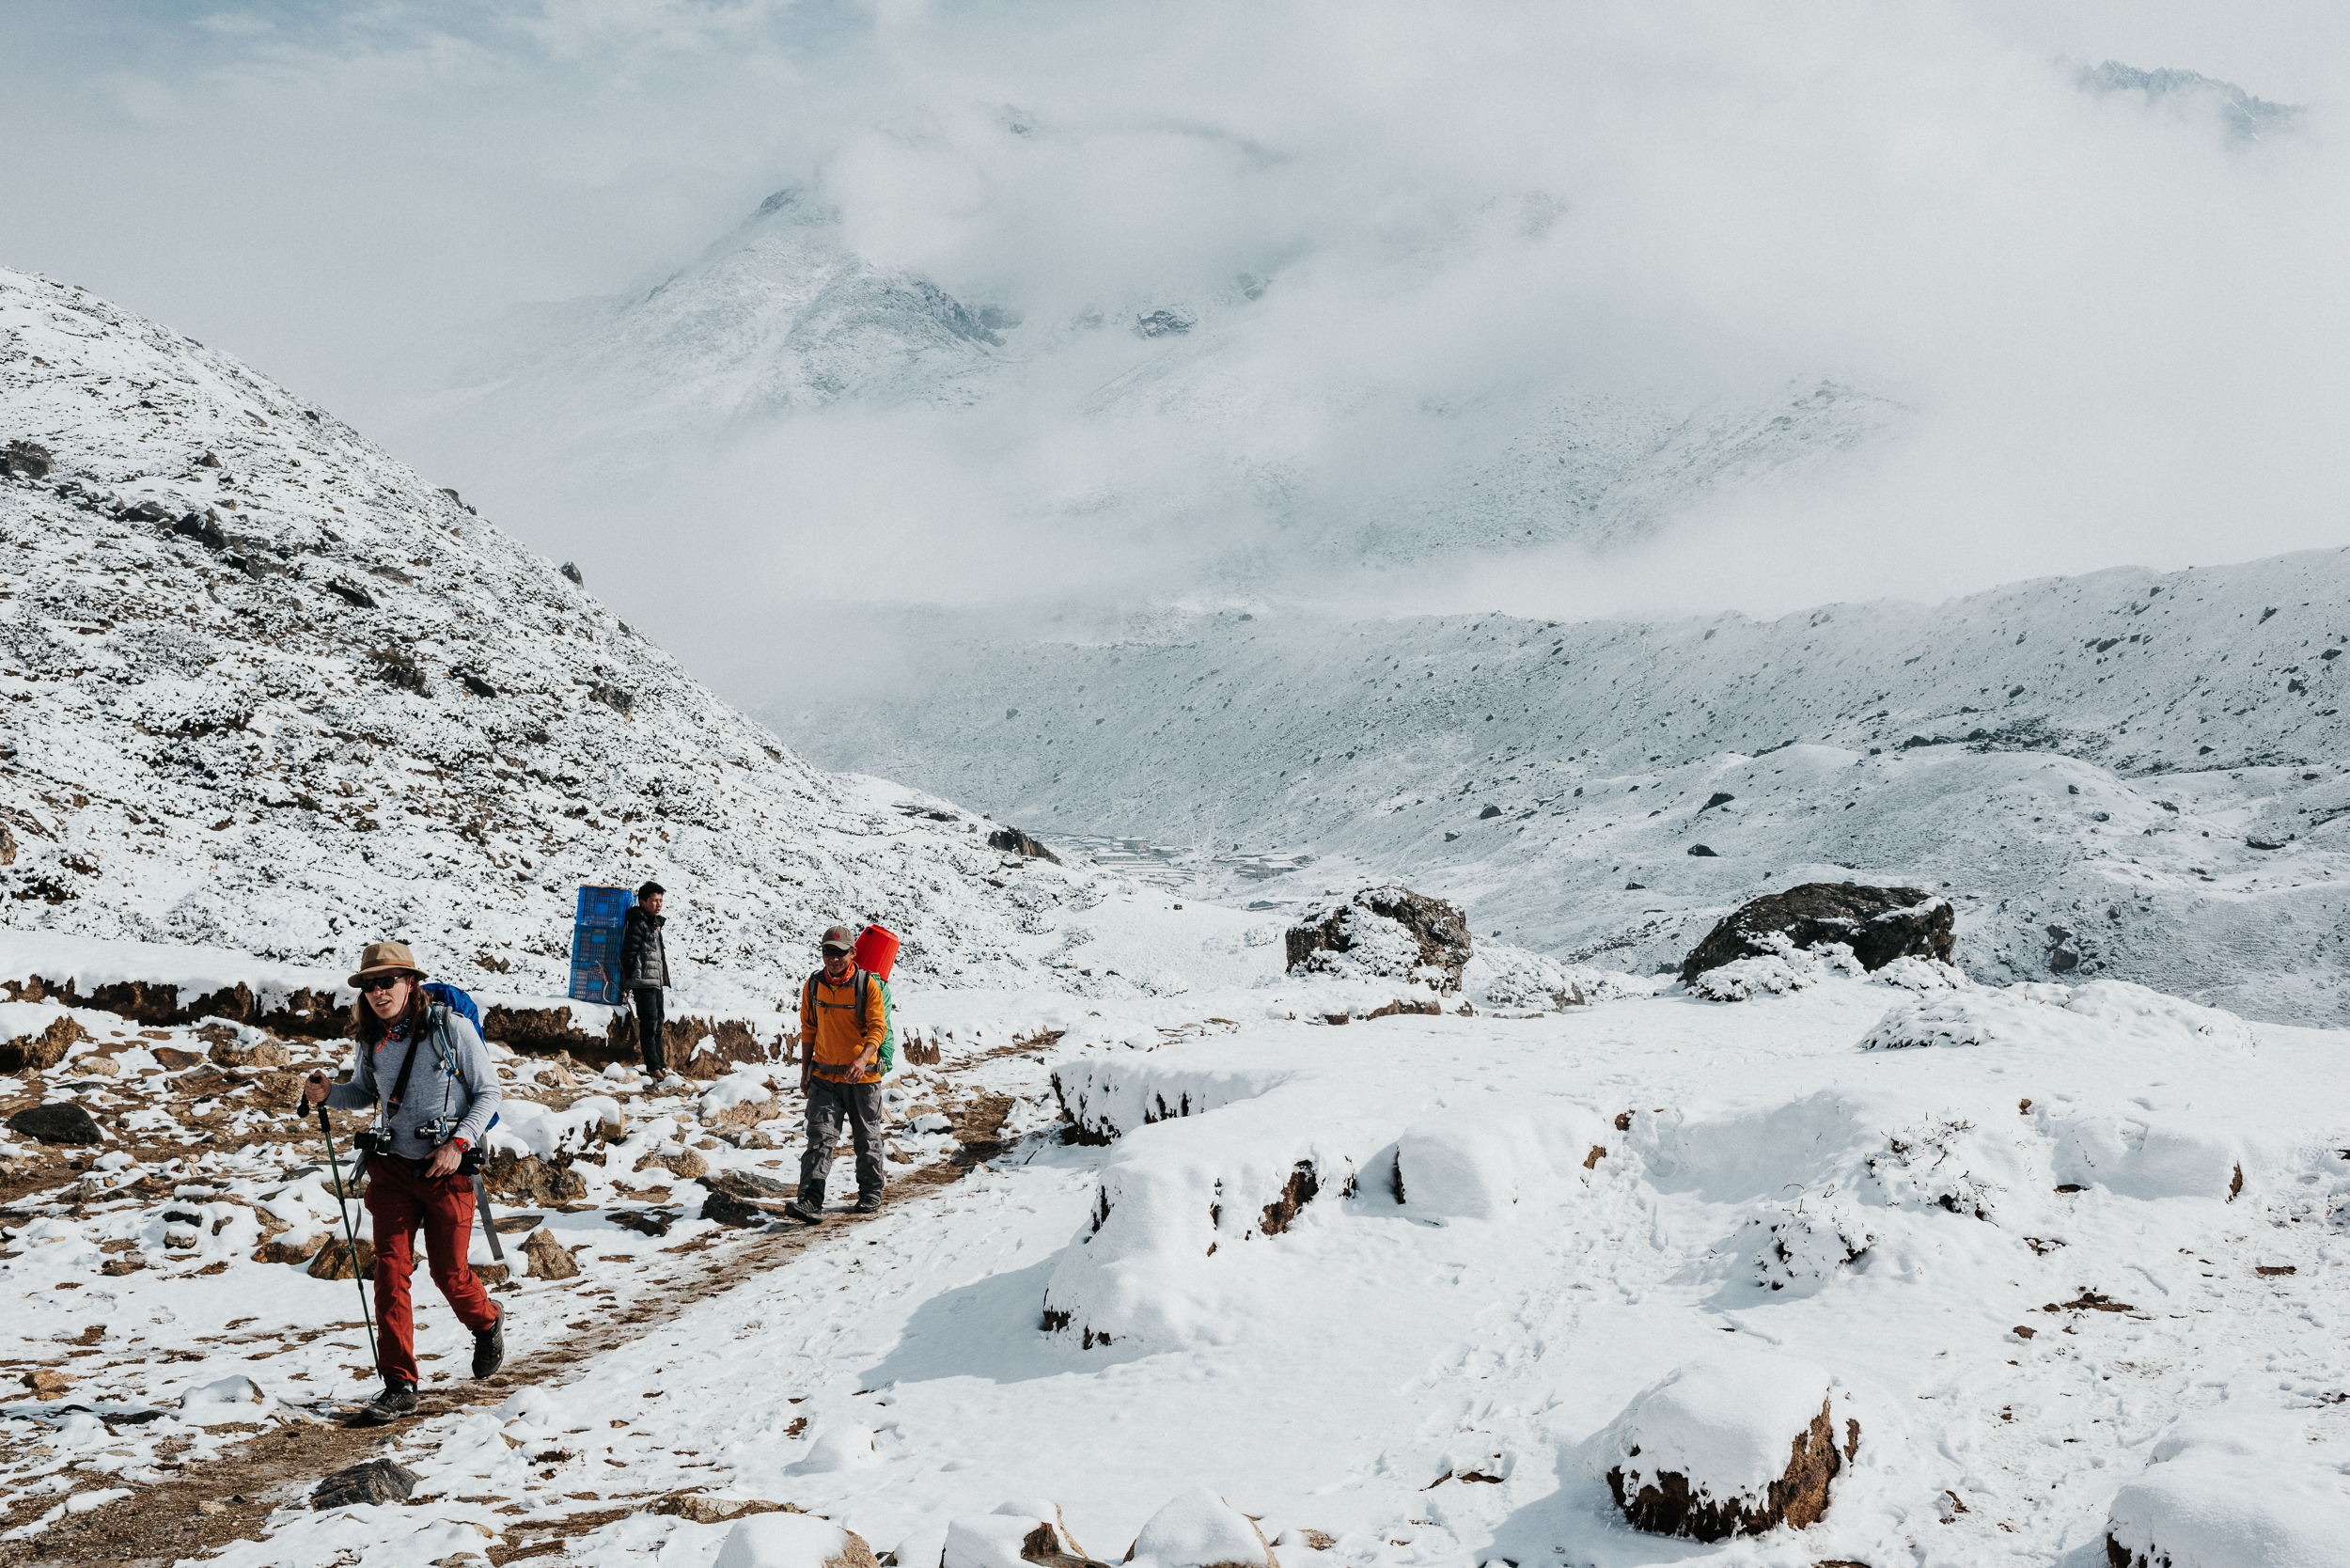 Nepal_EverestBaseCamp_2019_TaraShupe_Photography_DSC_4457.jpg